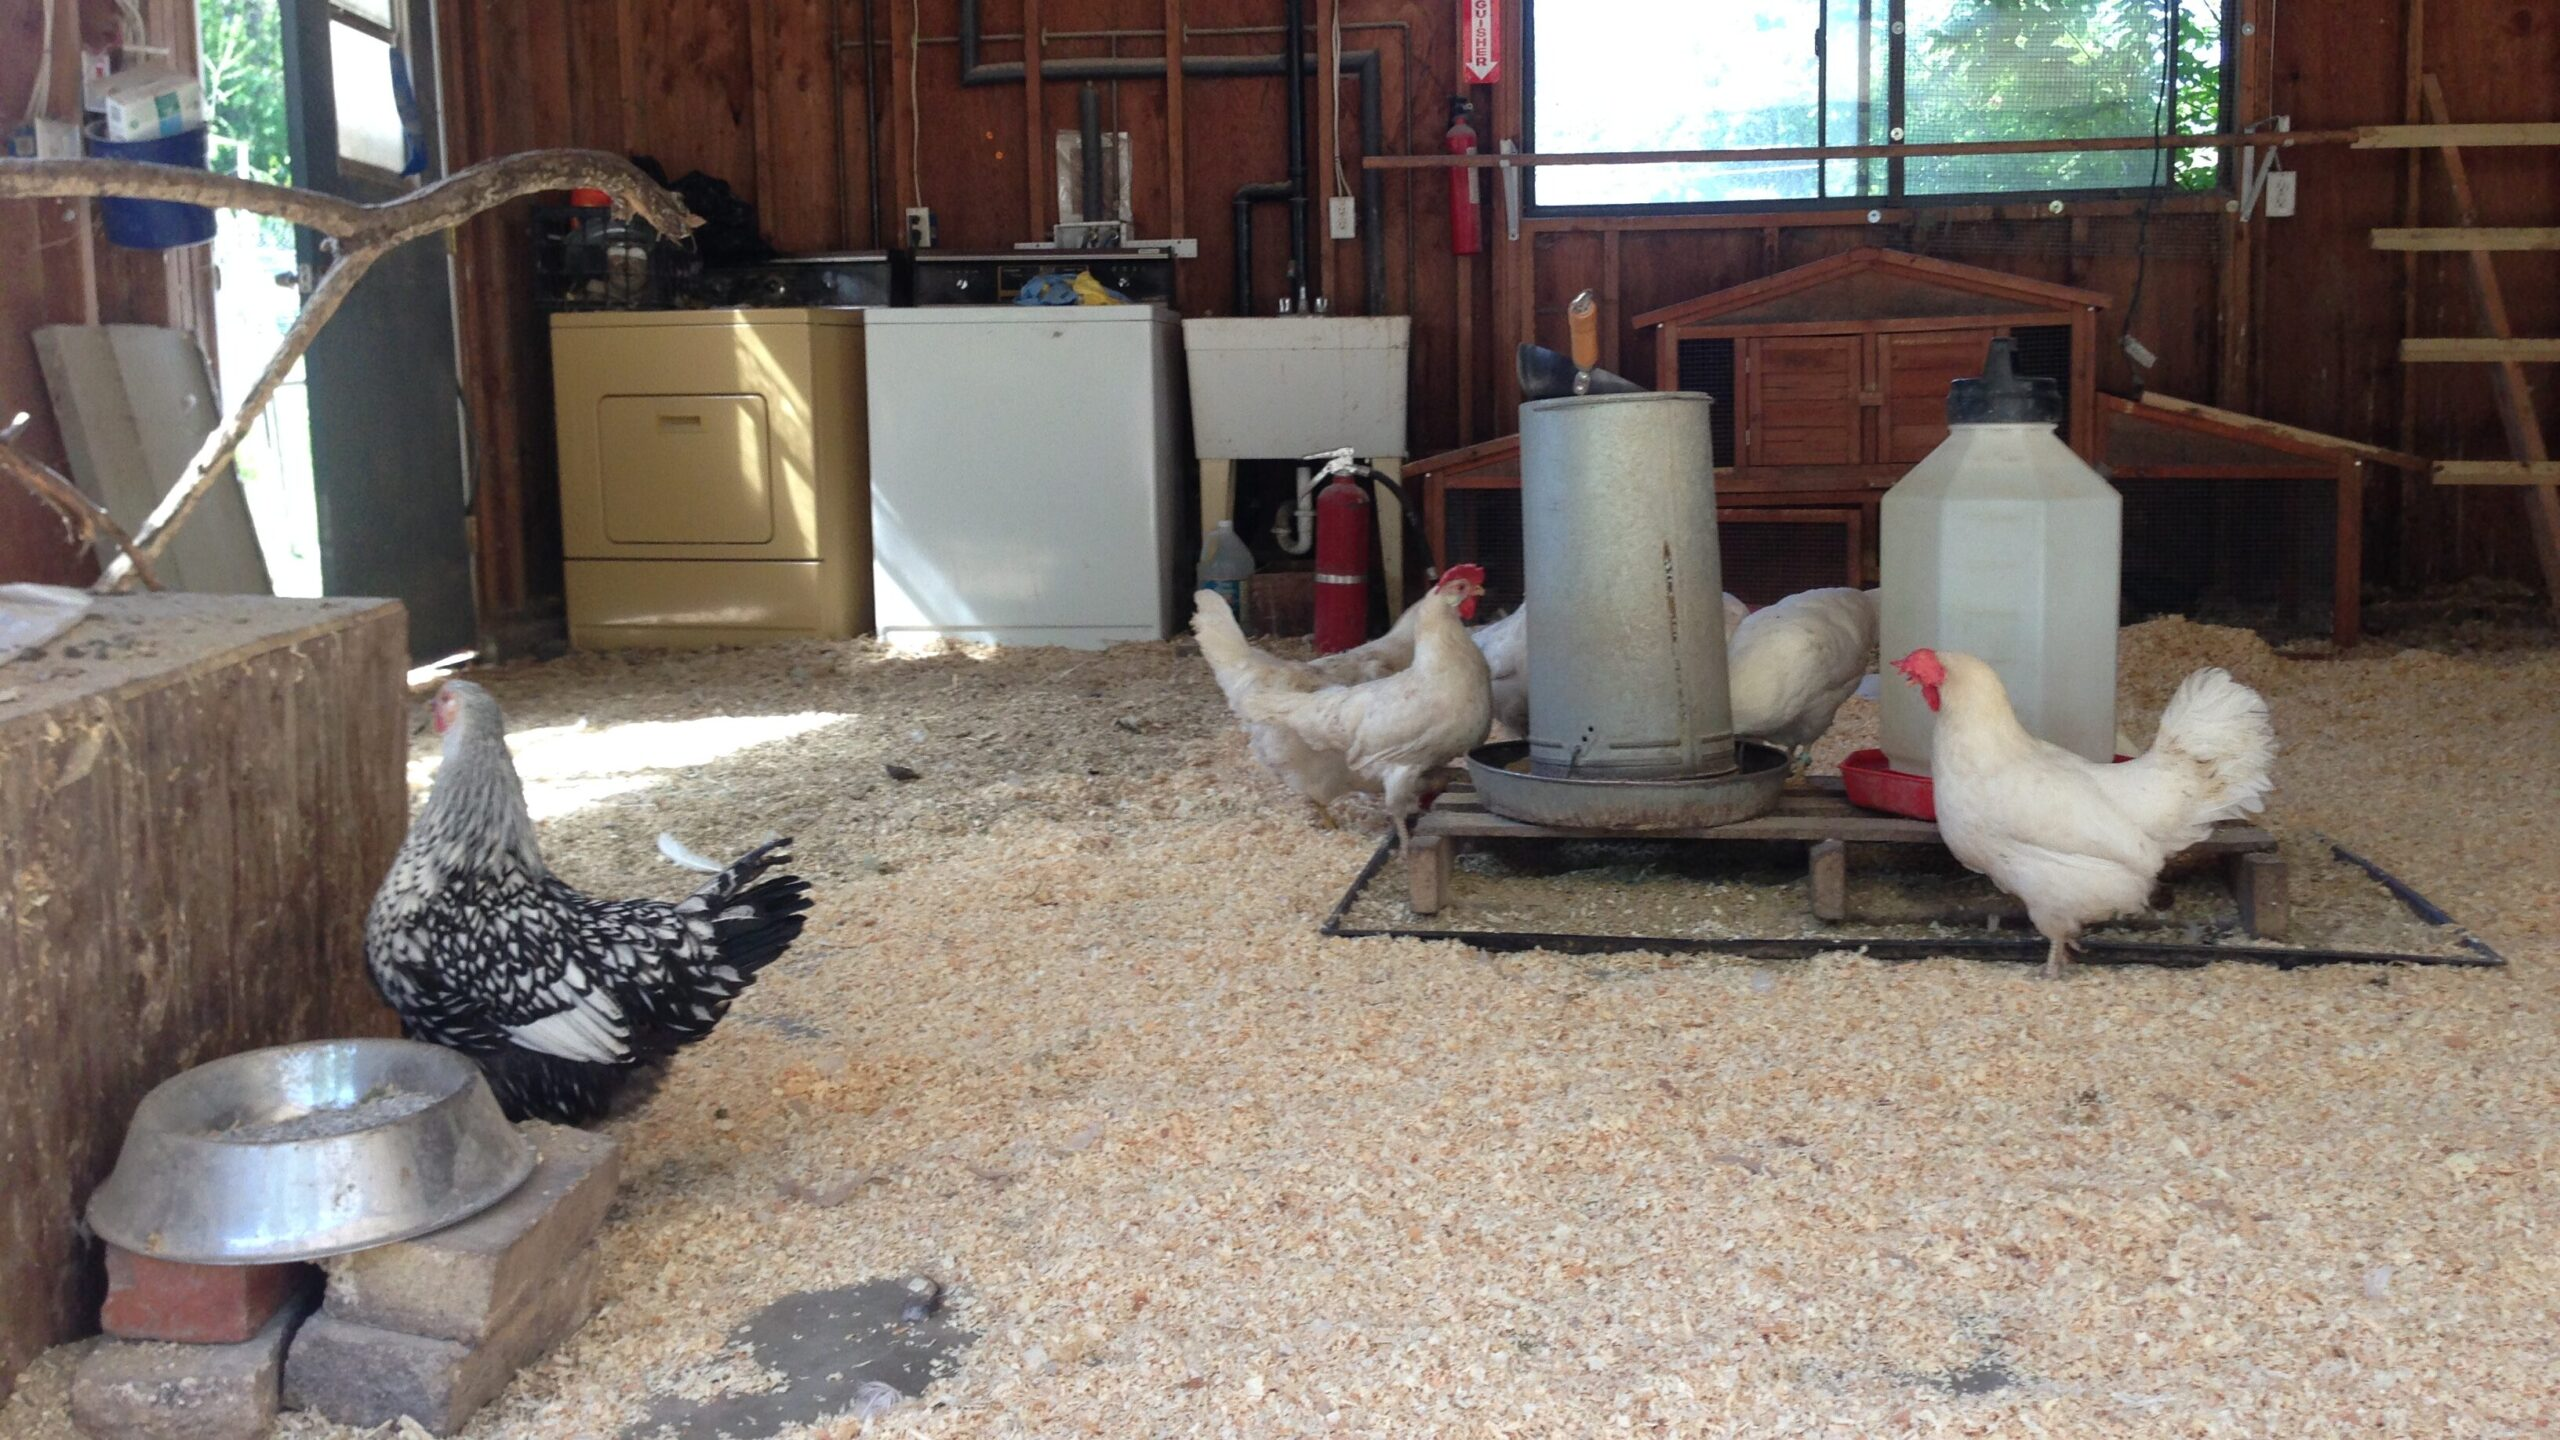 chickens in a converted garage